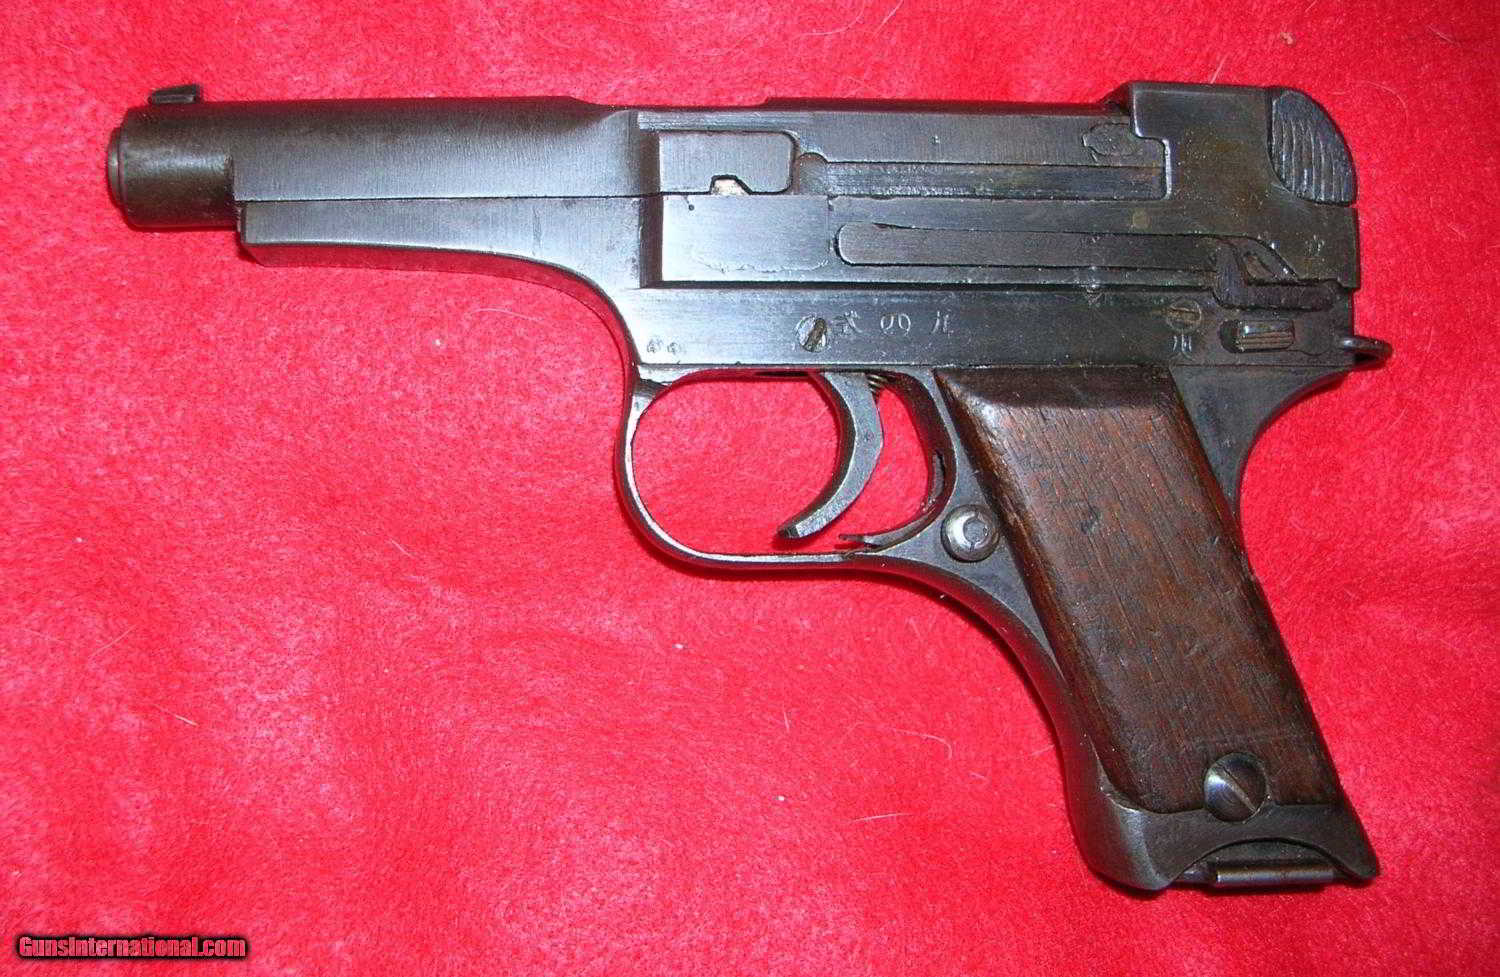 nambu pistol dating 122 makes it a 1937 pistol 1925 is the year that method of dating starts at when hirohito came to power who knows about japanese nambu pistols.